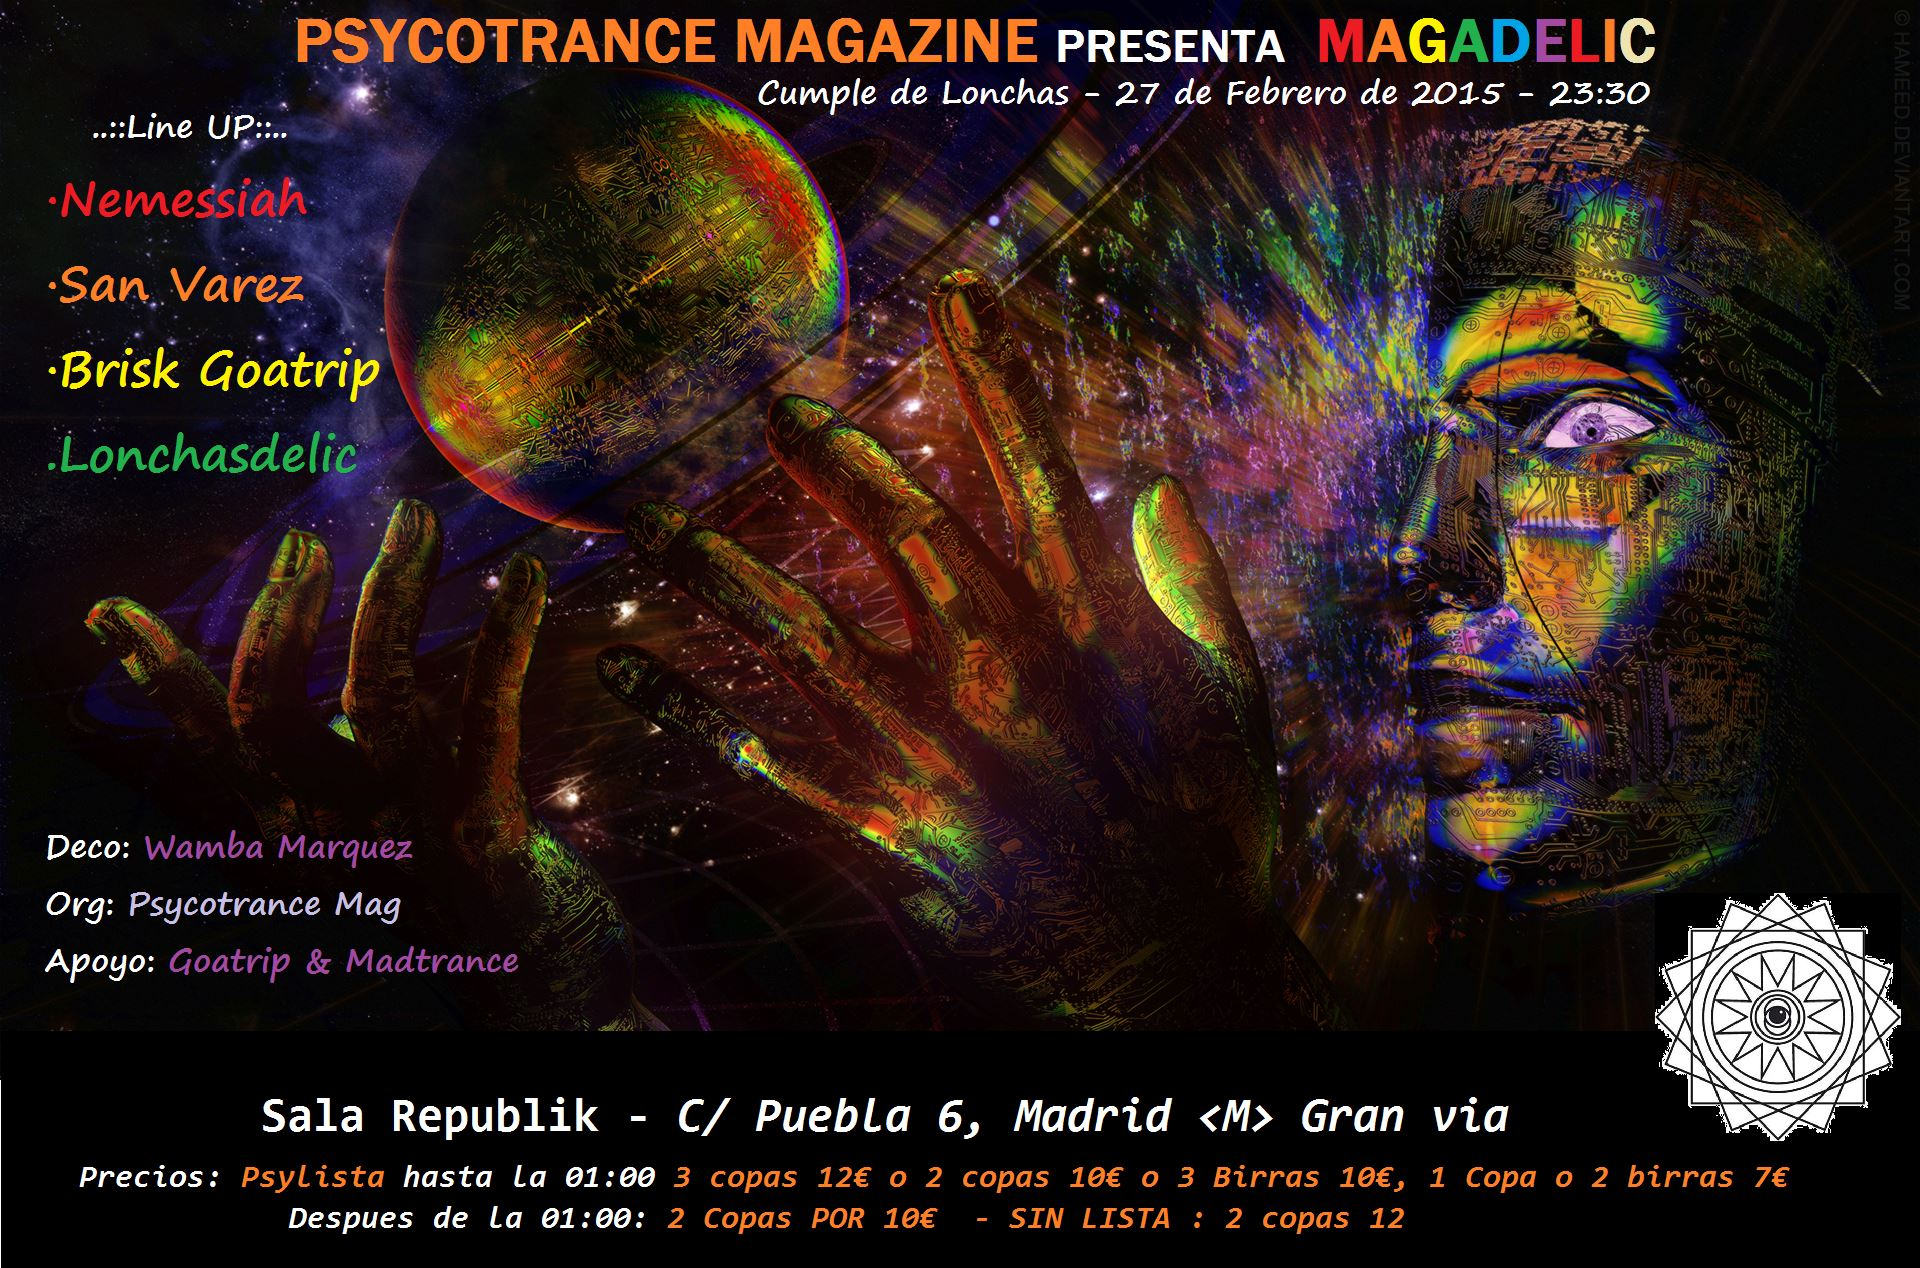 2º Psycotrance Night: Psytrance y Goa en pleno centro de Madrid